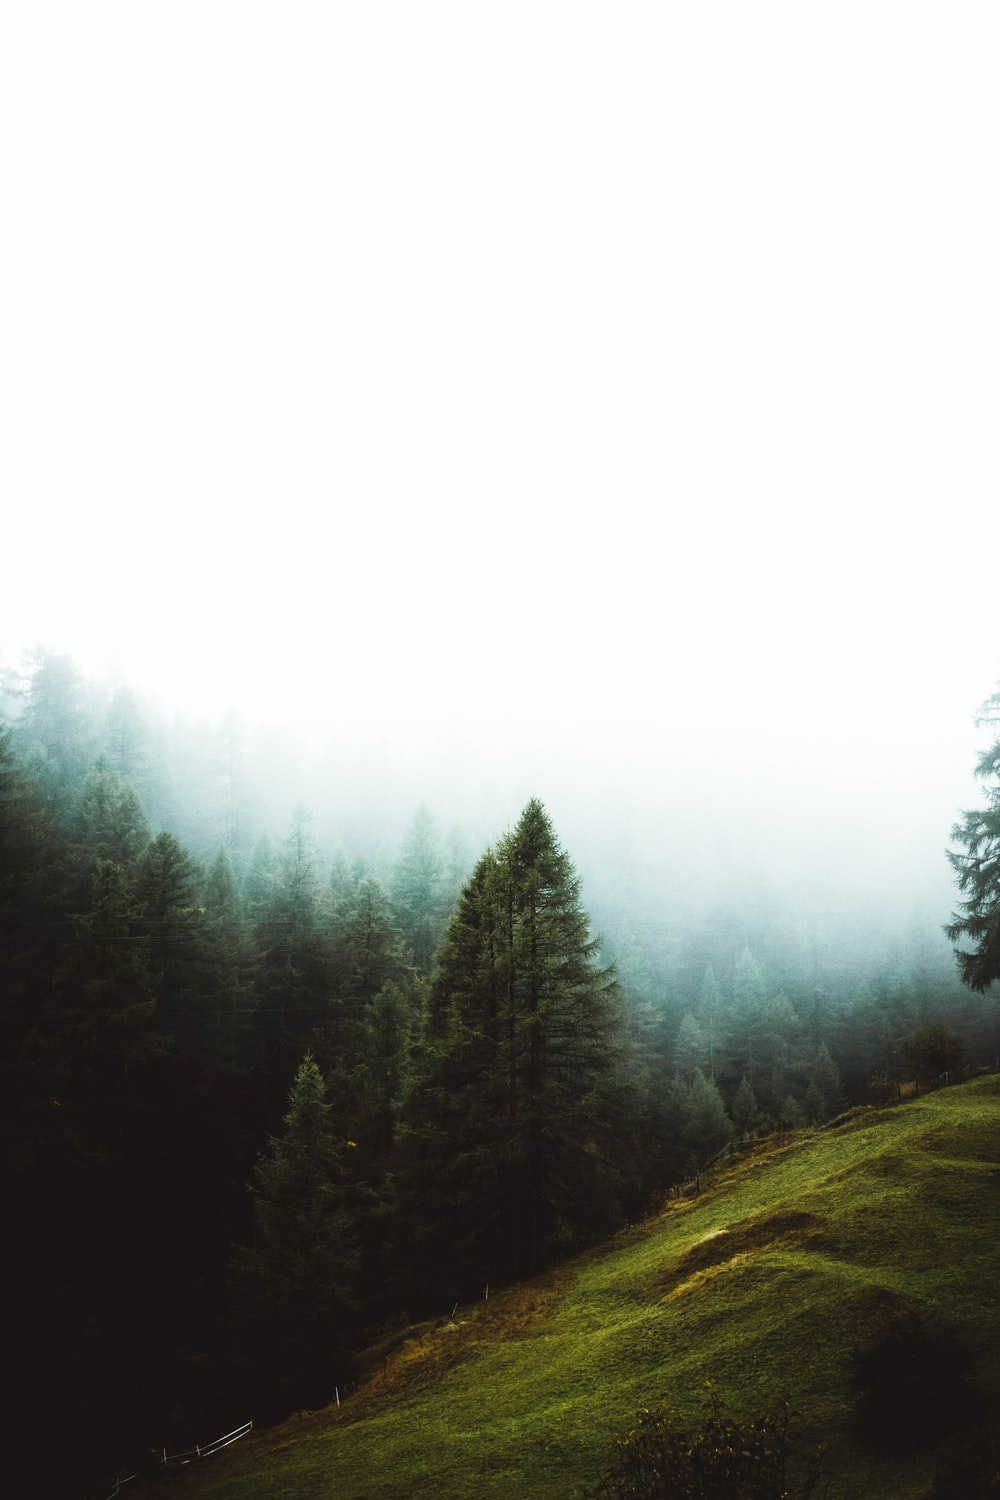 aerial photography of tall pine trees under thick fogs